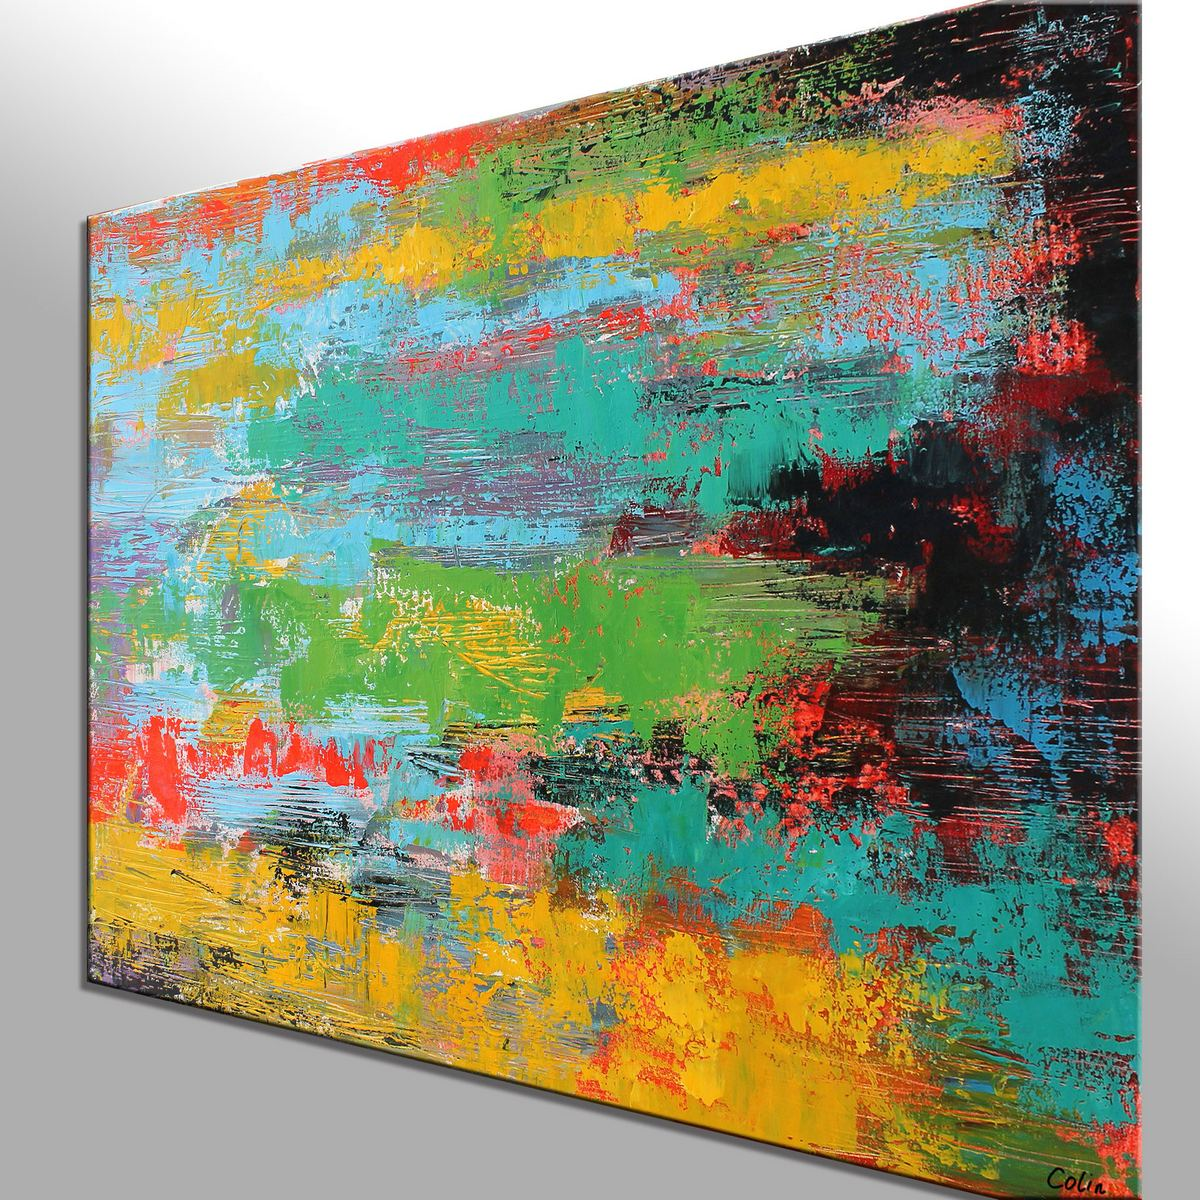 Contemporary Art, Abstract Landscape Art, Wall Art, Canvas Wall Art, Abstract Art, Large Art, Abstract Painting, Original Painting, 543